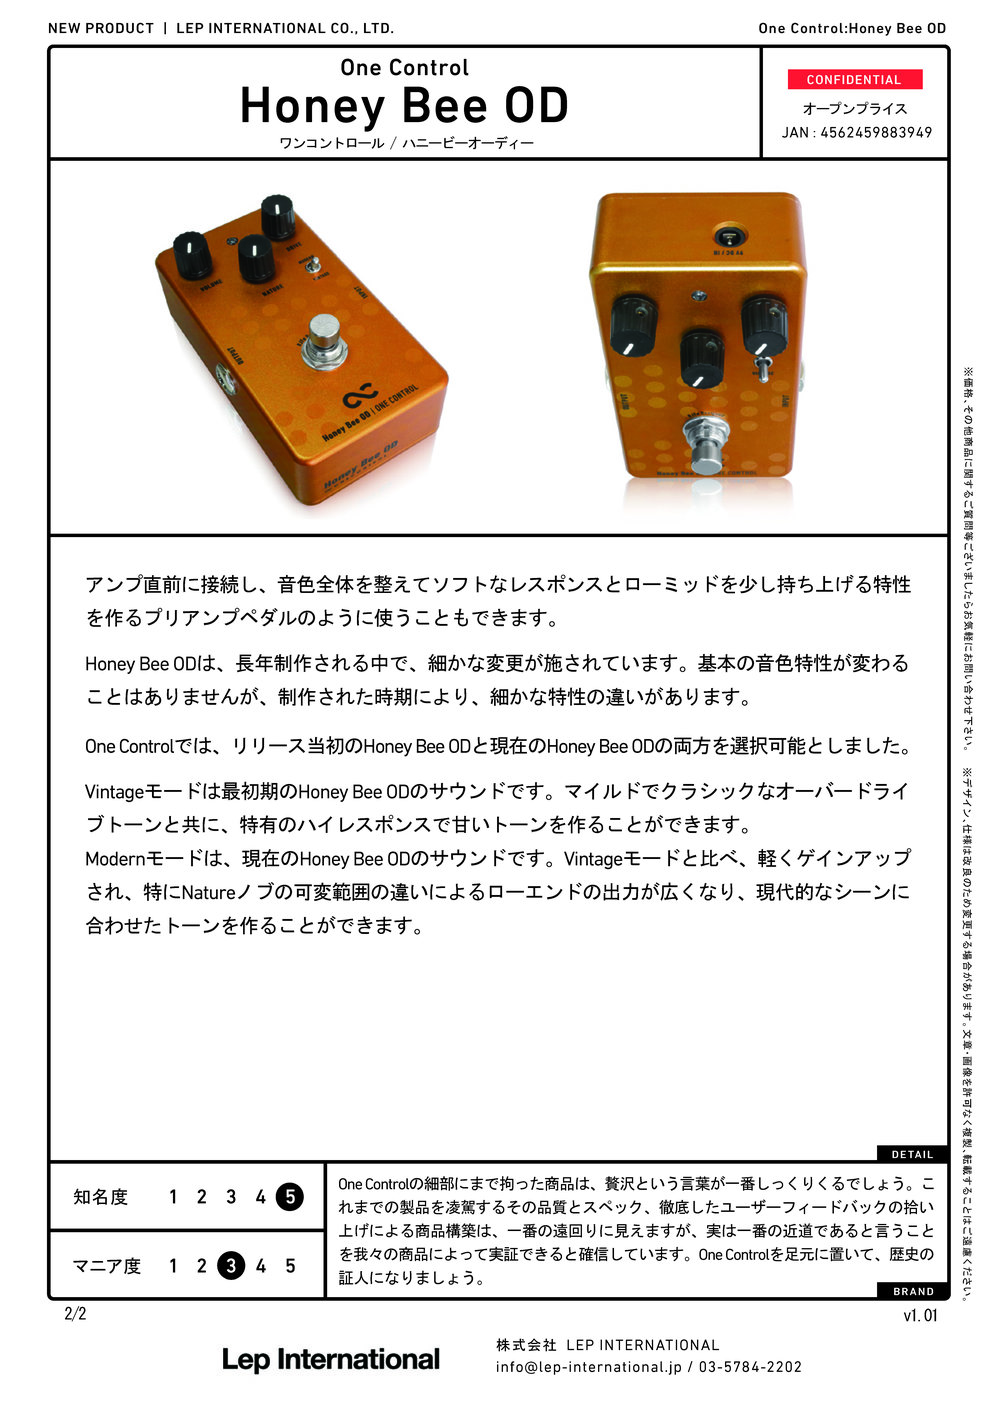 onecontrol honeybeeod v1.01_ページ_2.jpg